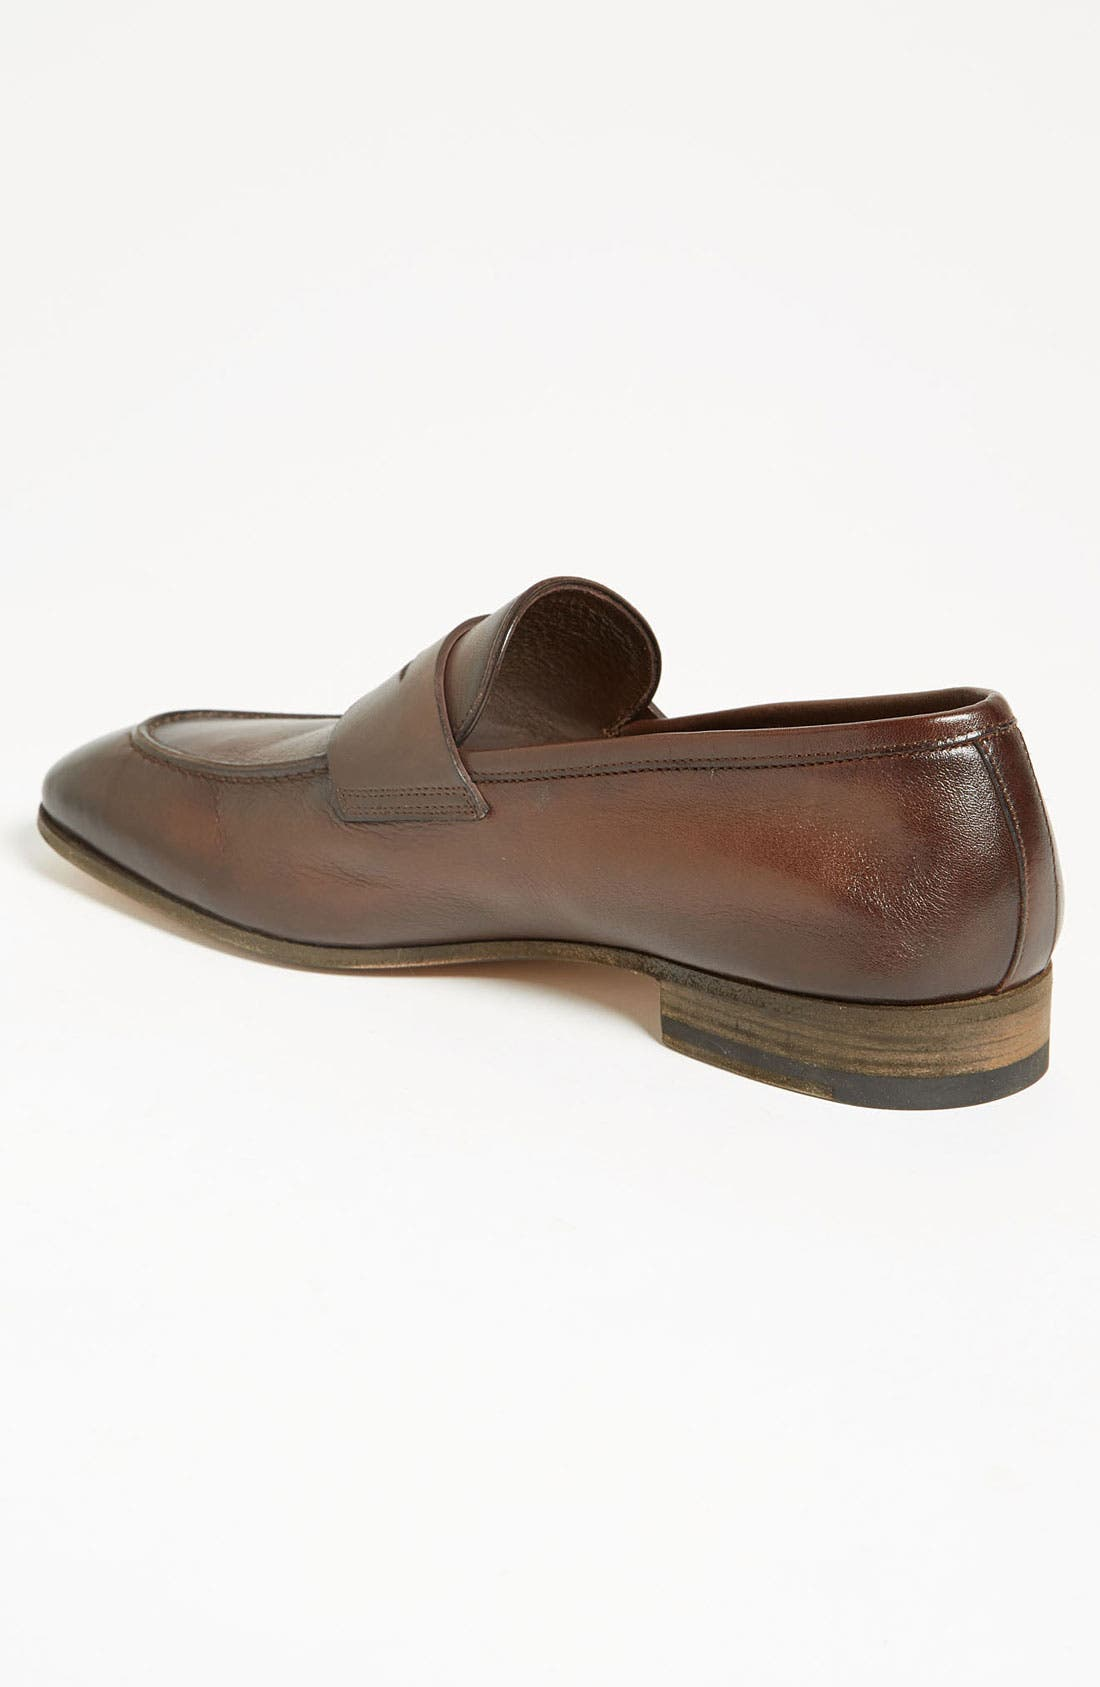 Alternate Image 2  - Santoni 'Tristan' Penny Loafer (Men)